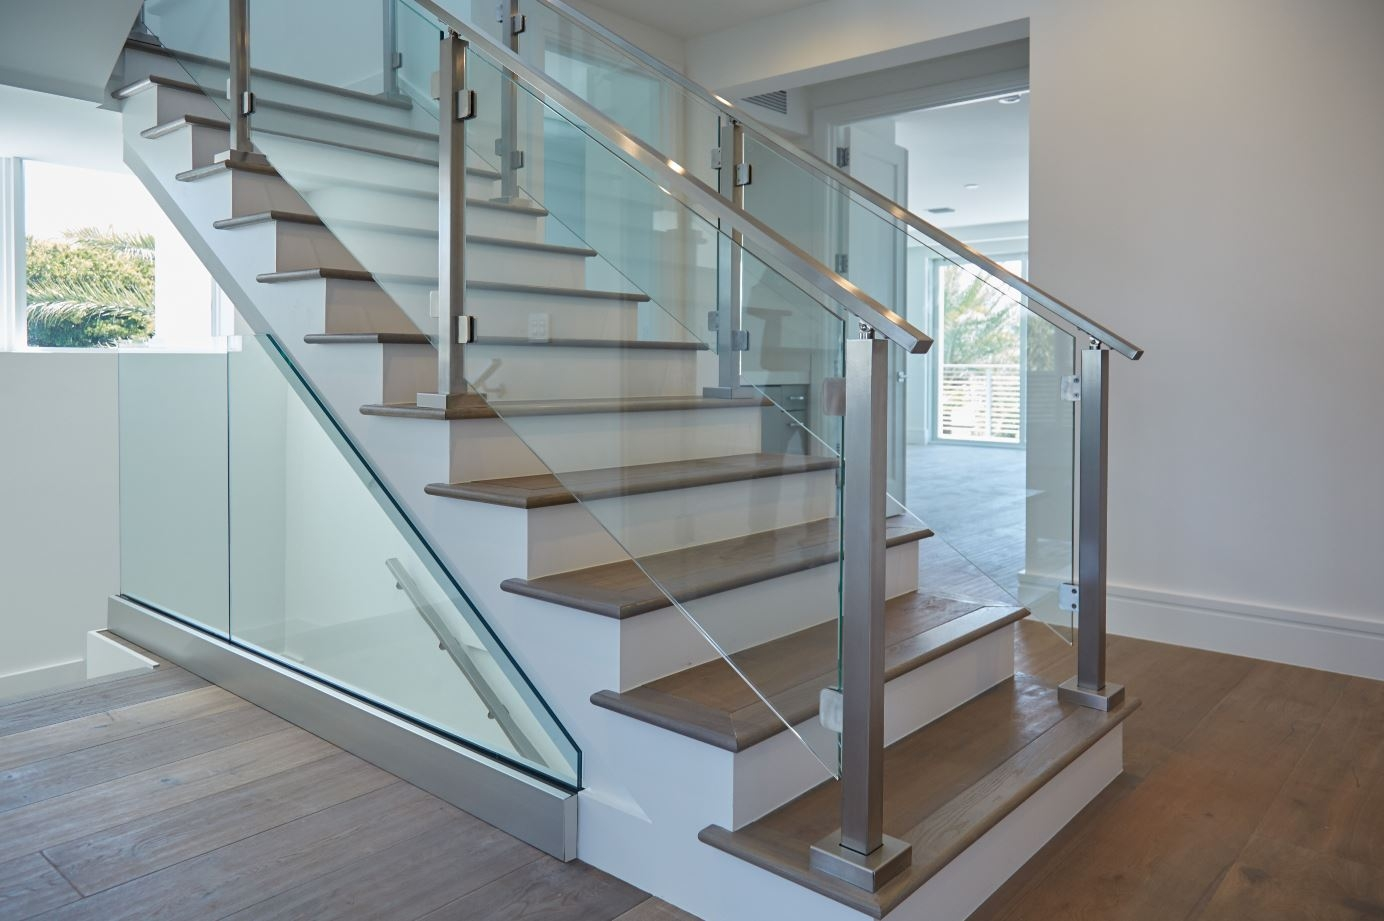 Modern Railing Systems In Wood Cable Wire Stainless Steel Glass | Modern Wood Staircase Railing | Residential | Interior | Floor To Ceiling | Ultra Modern | Traditional Wood Stair